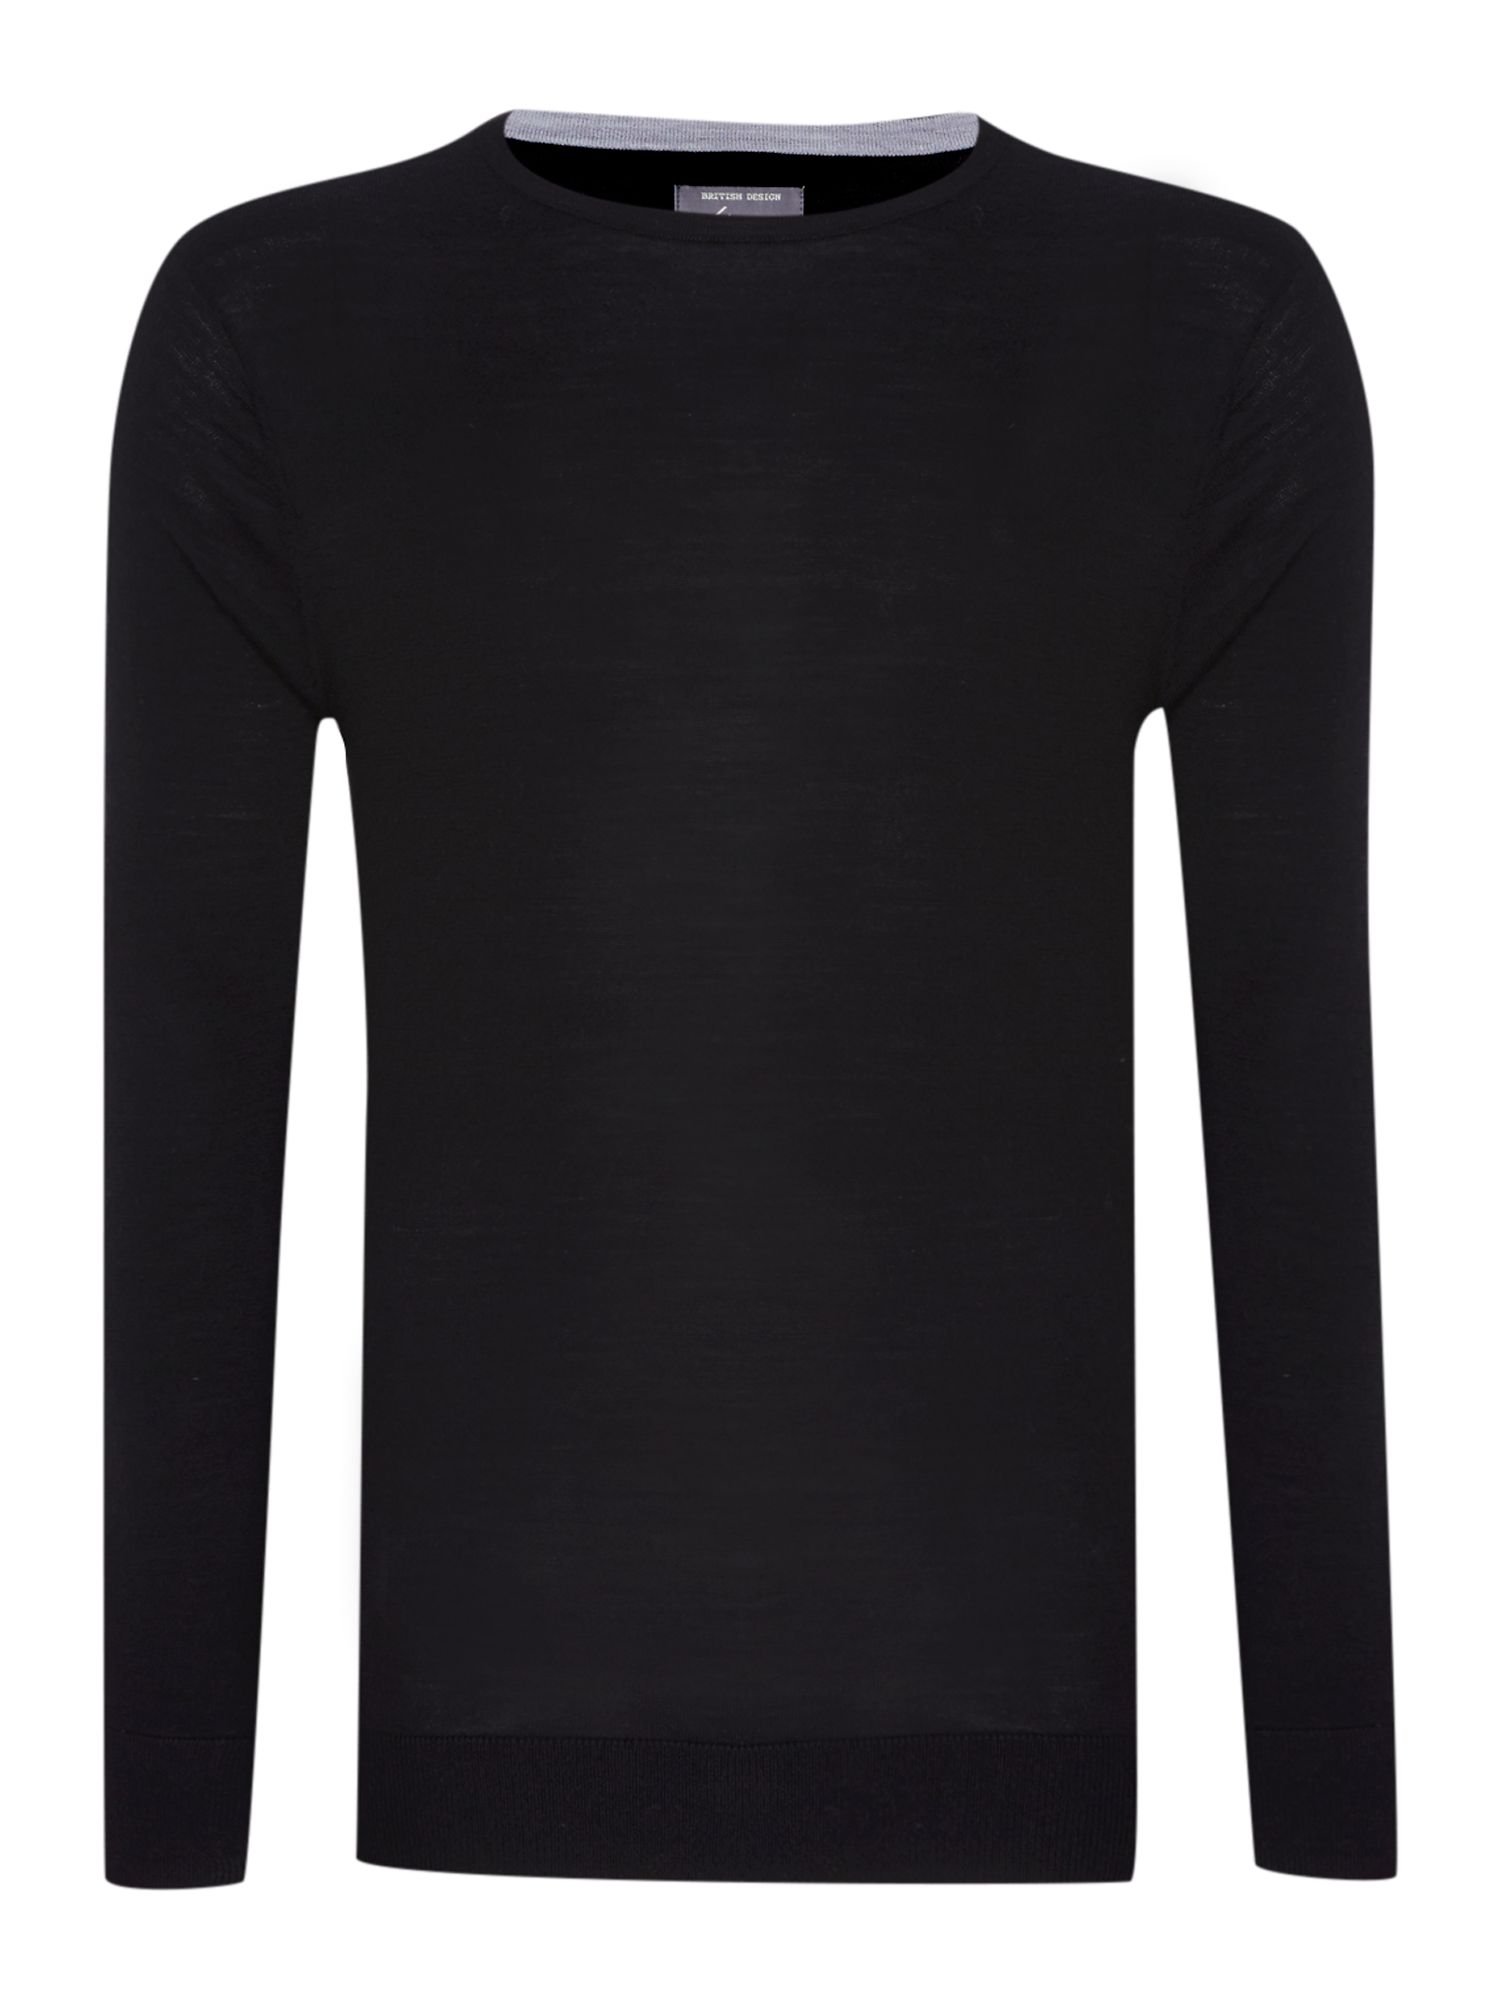 Prestwick crew neck washable merino